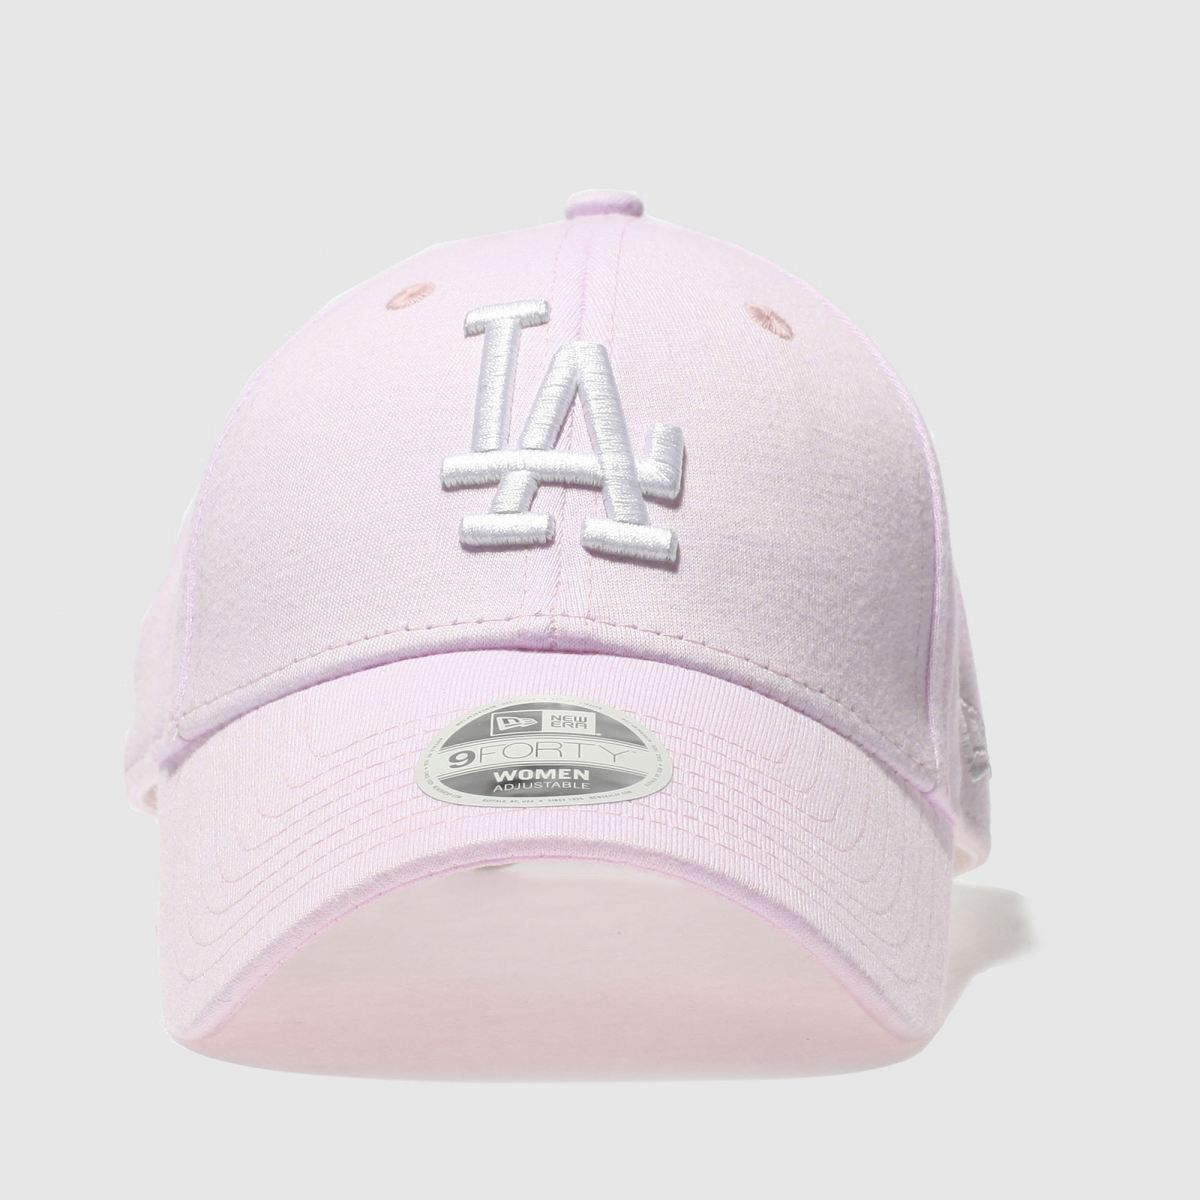 New Era New Era Pale Pink Jersey 9forty La Dodgers